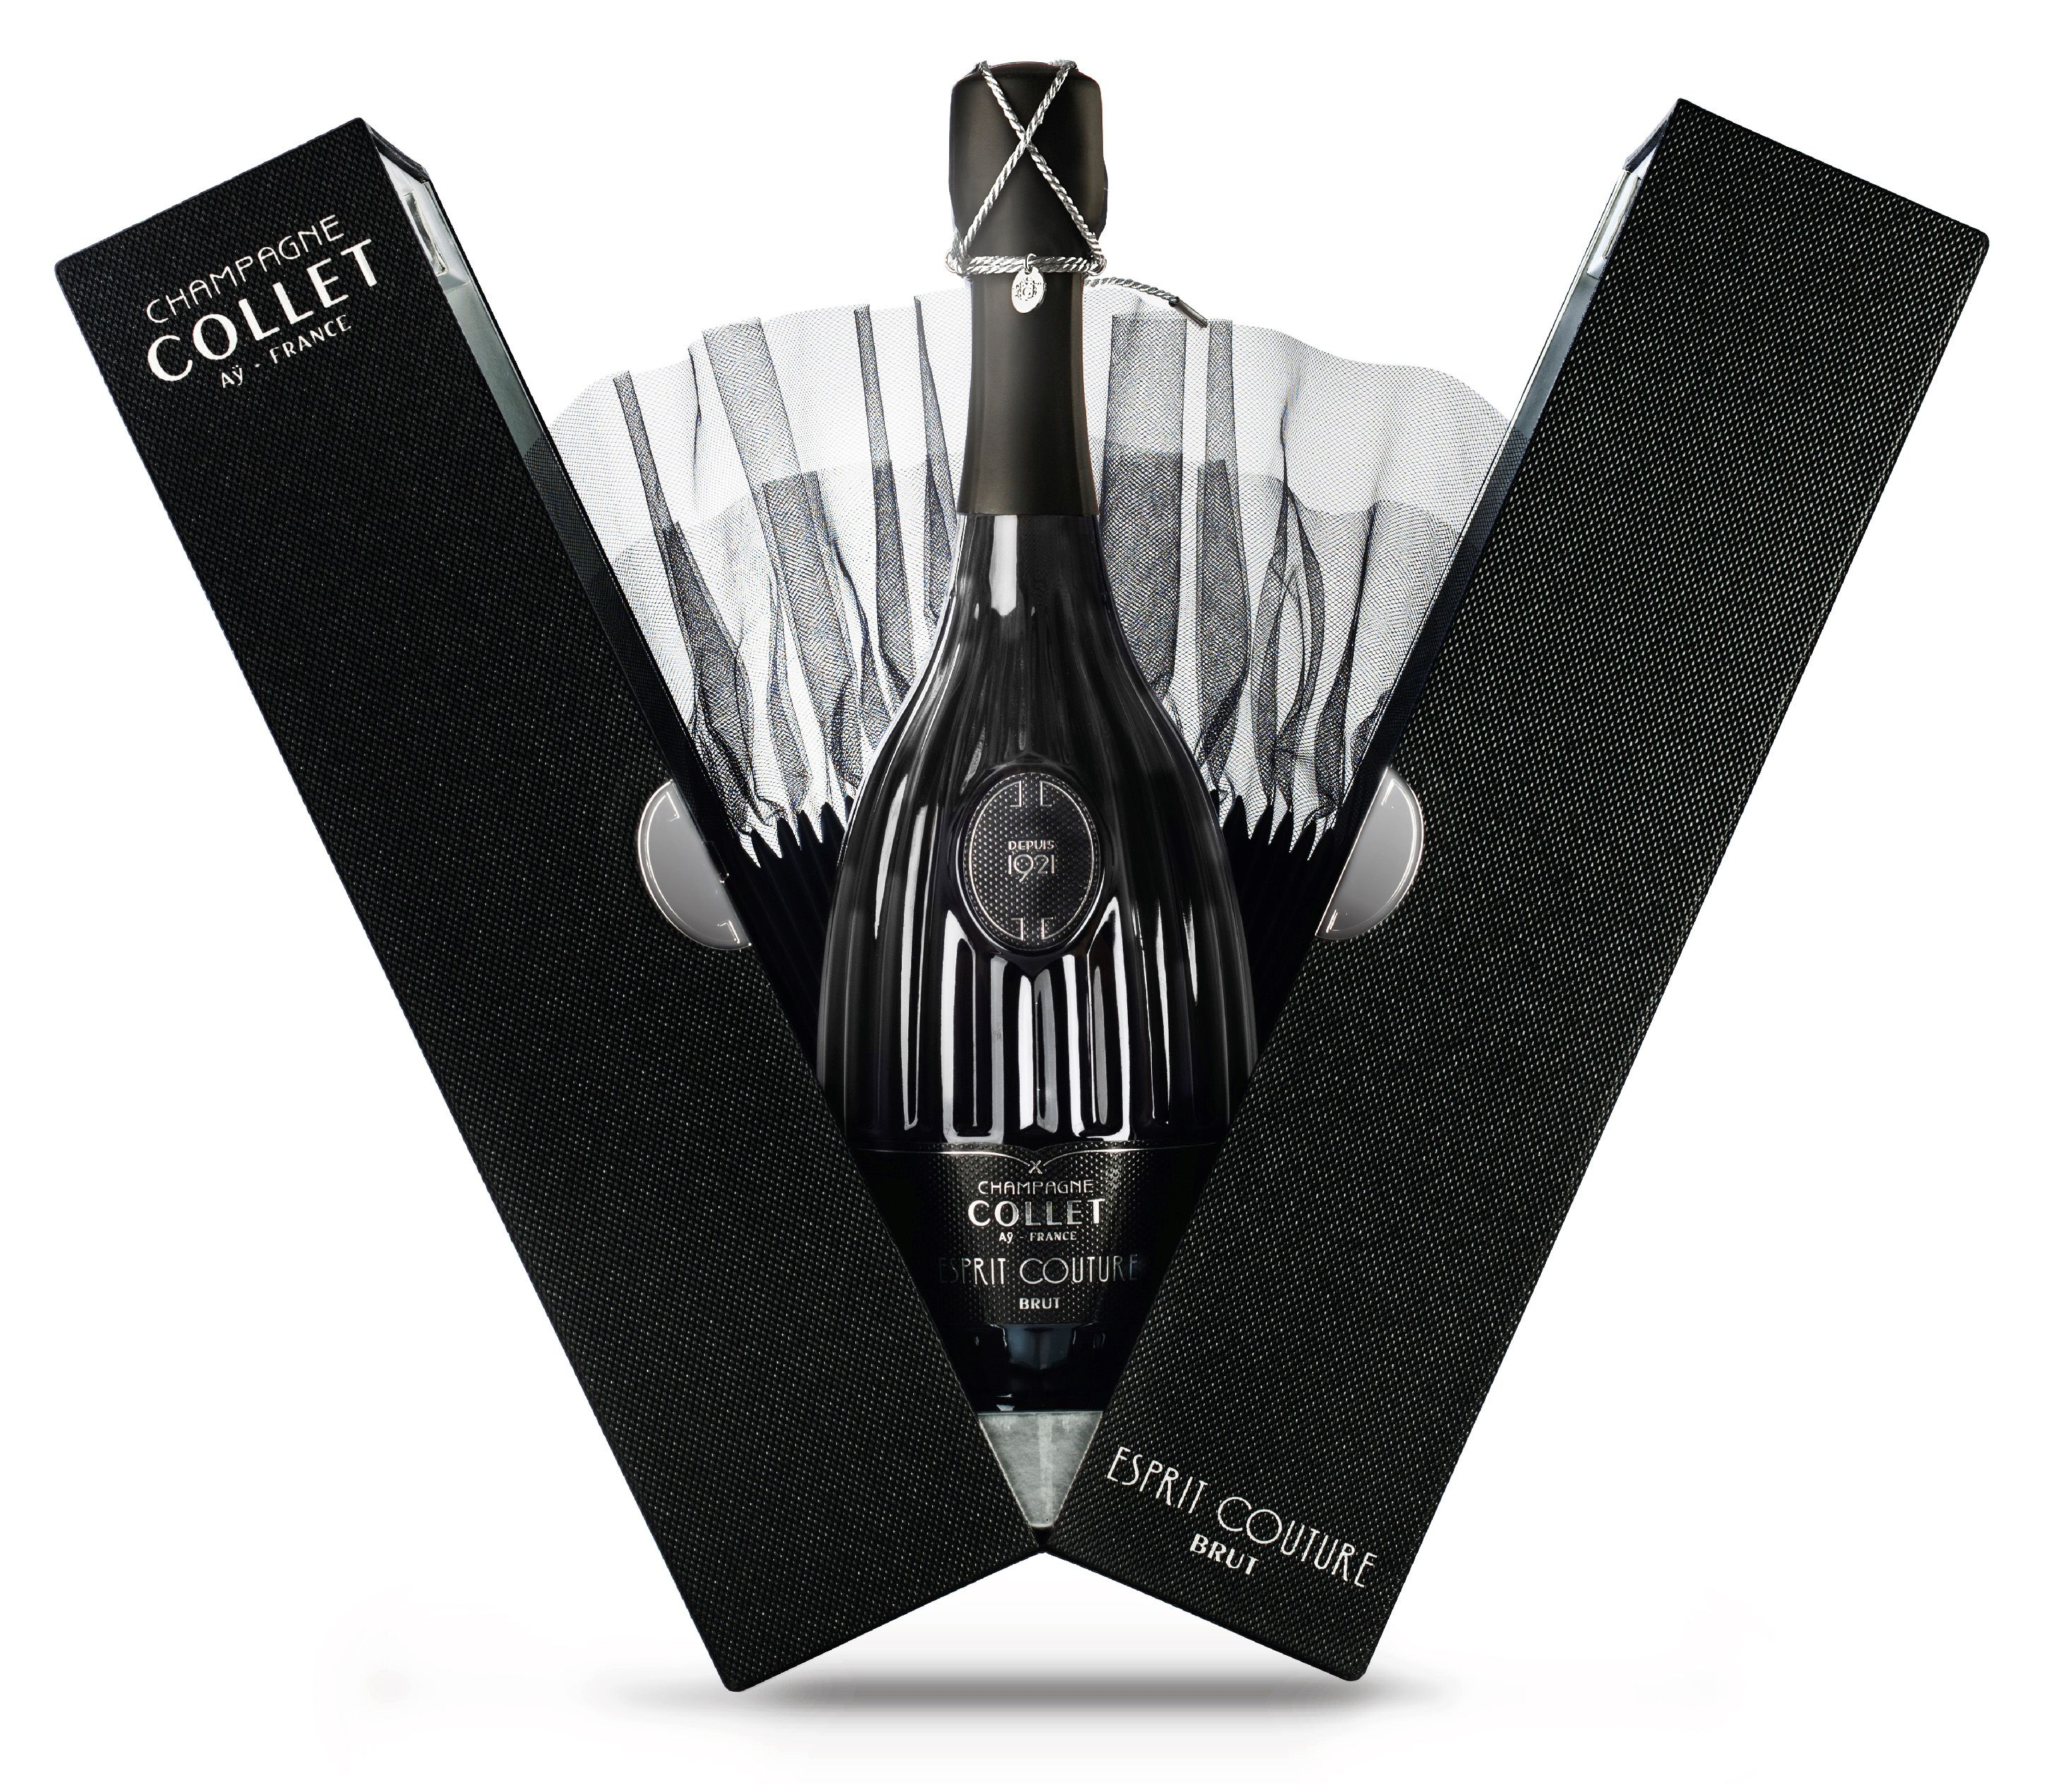 Collet Esprit Couture Brut in Gift Box Gift Product Image